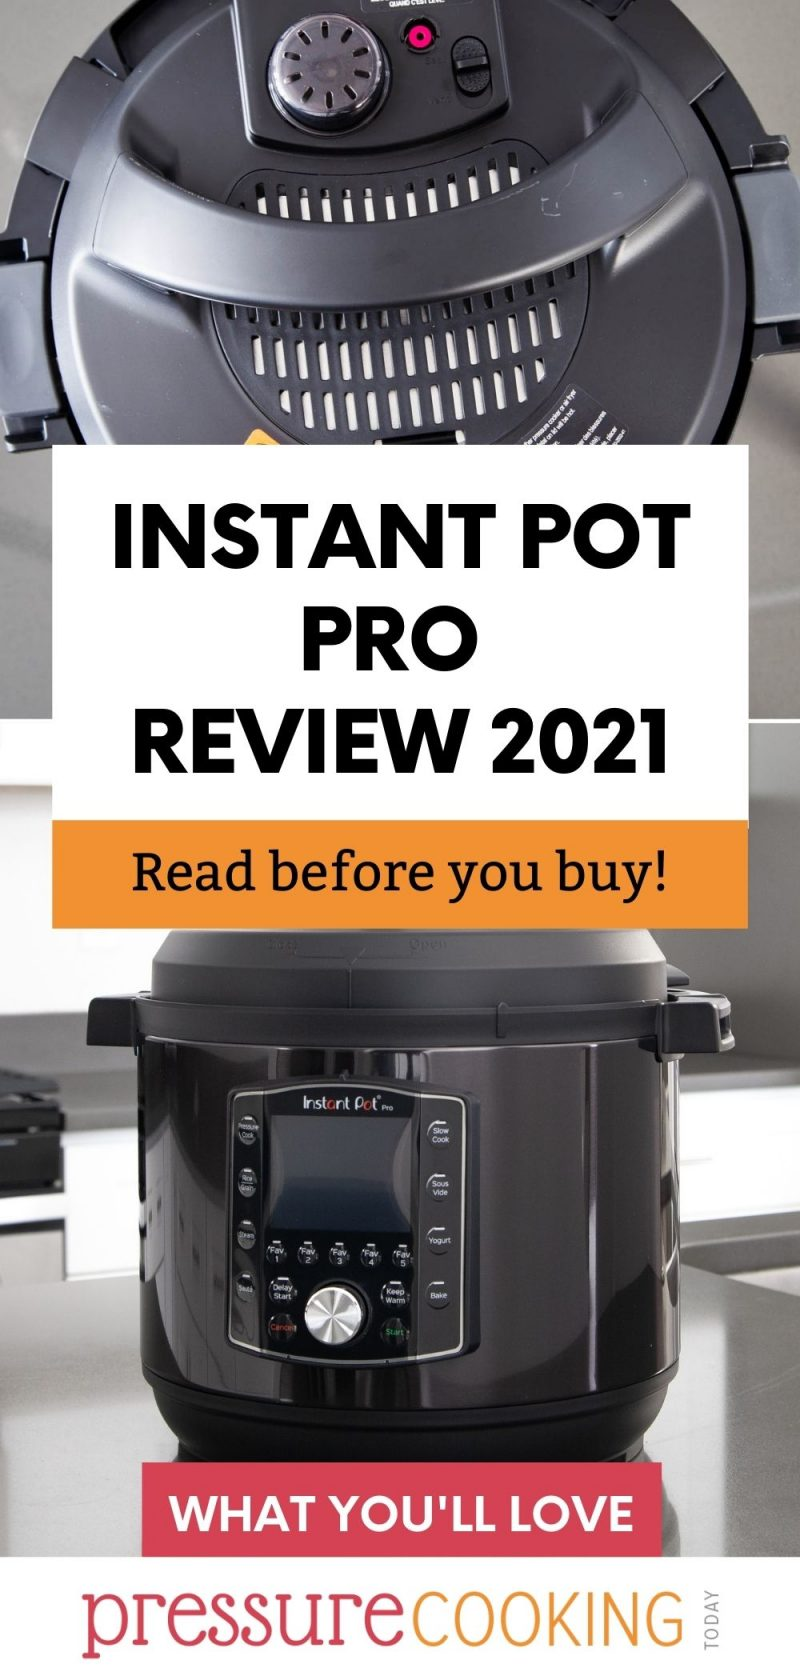 Pinterest image promoting Instant Pot Pro 2021, with a close-up of the lid and a